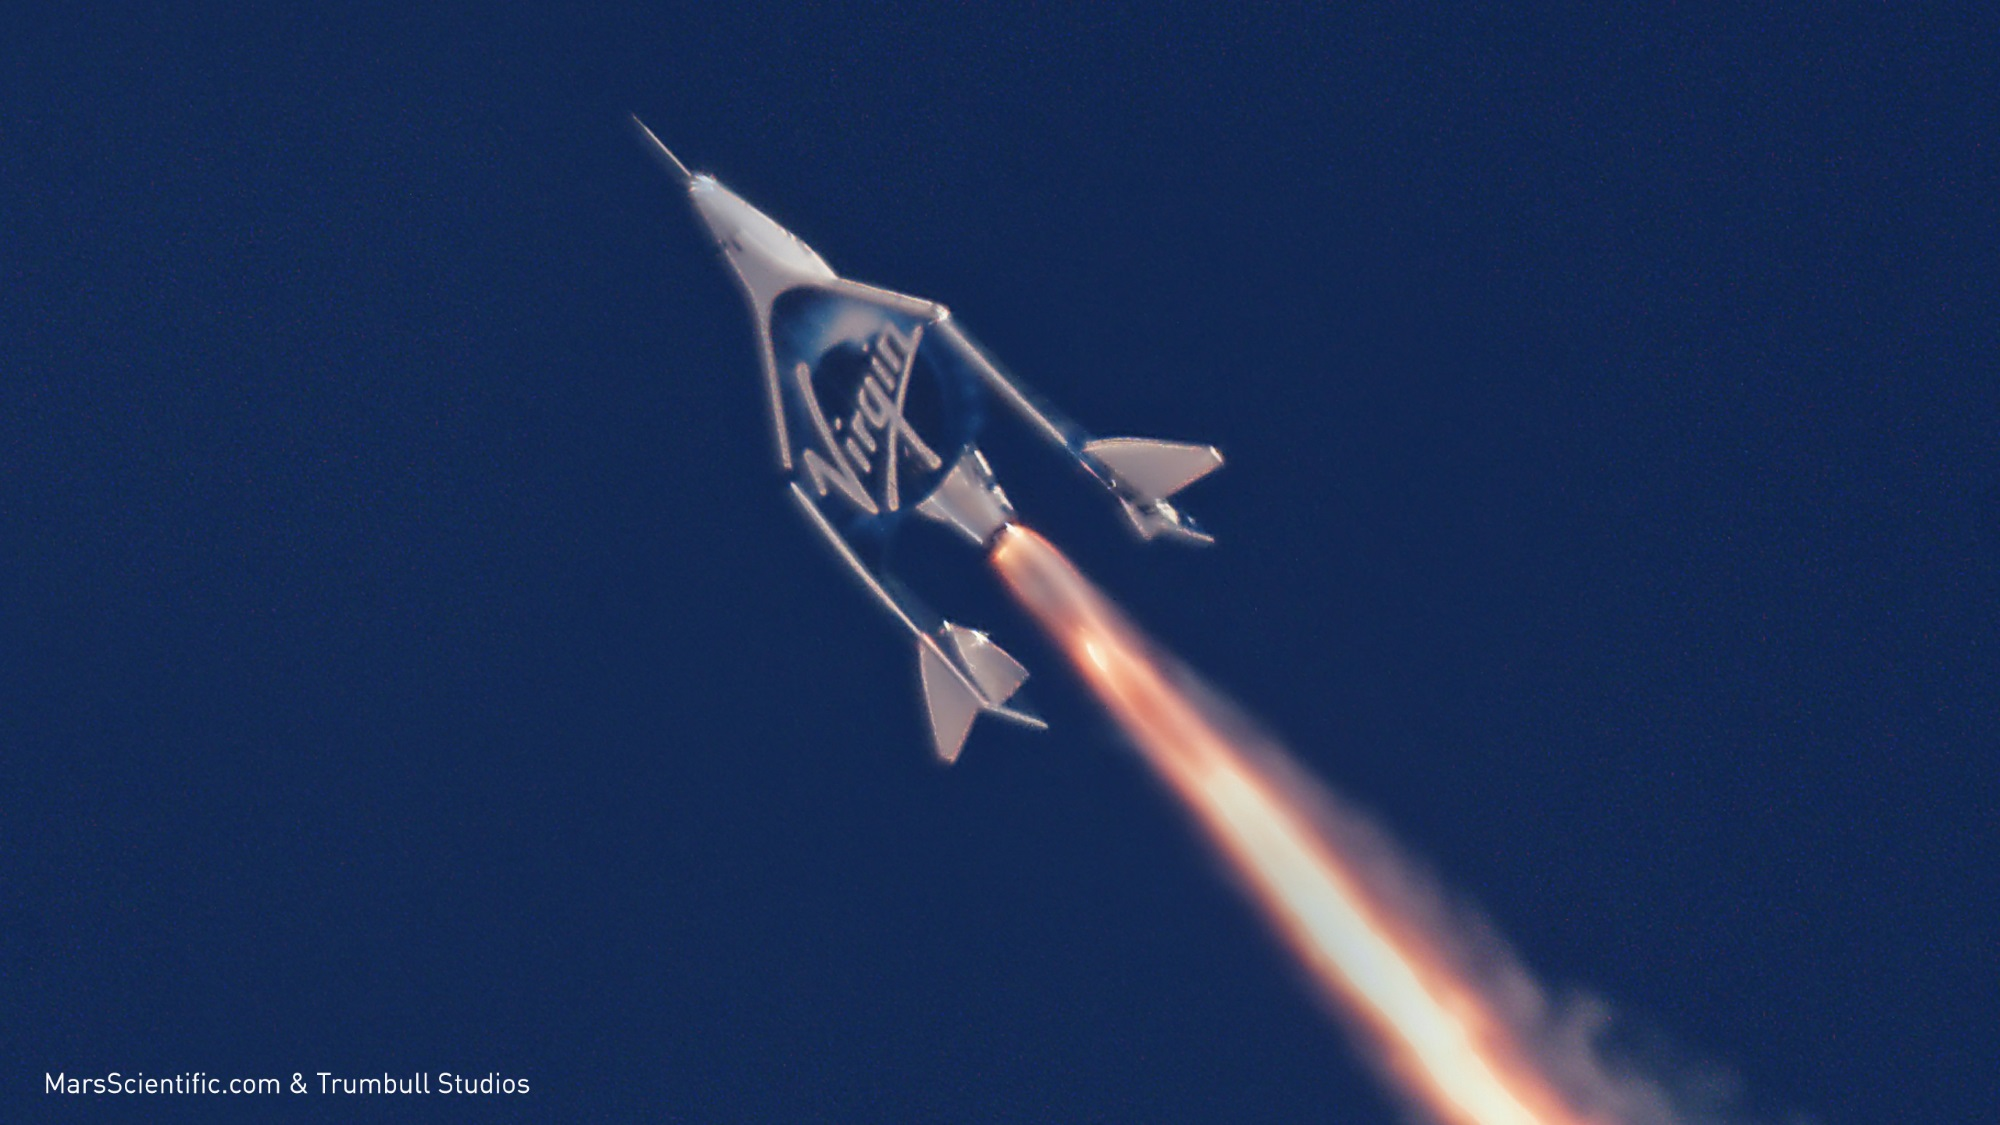 Virgin Galactic is 'coming home' to Spaceport America in New Mexico